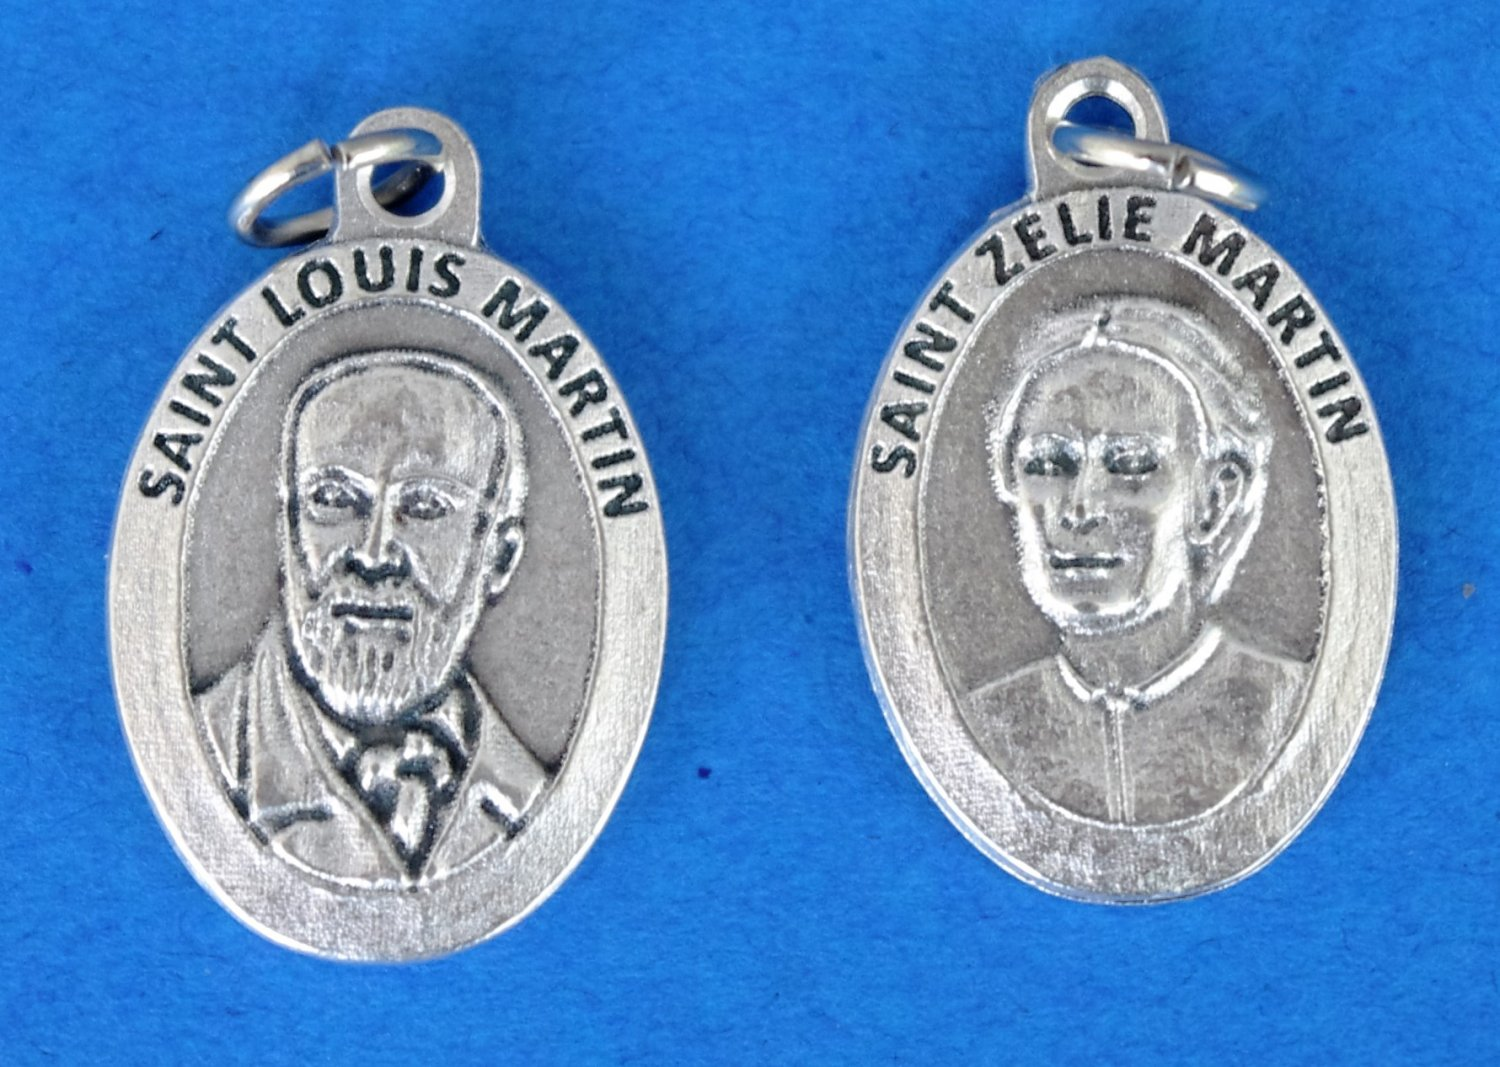 Sts. Louis and Zelie Martin Medal M-321